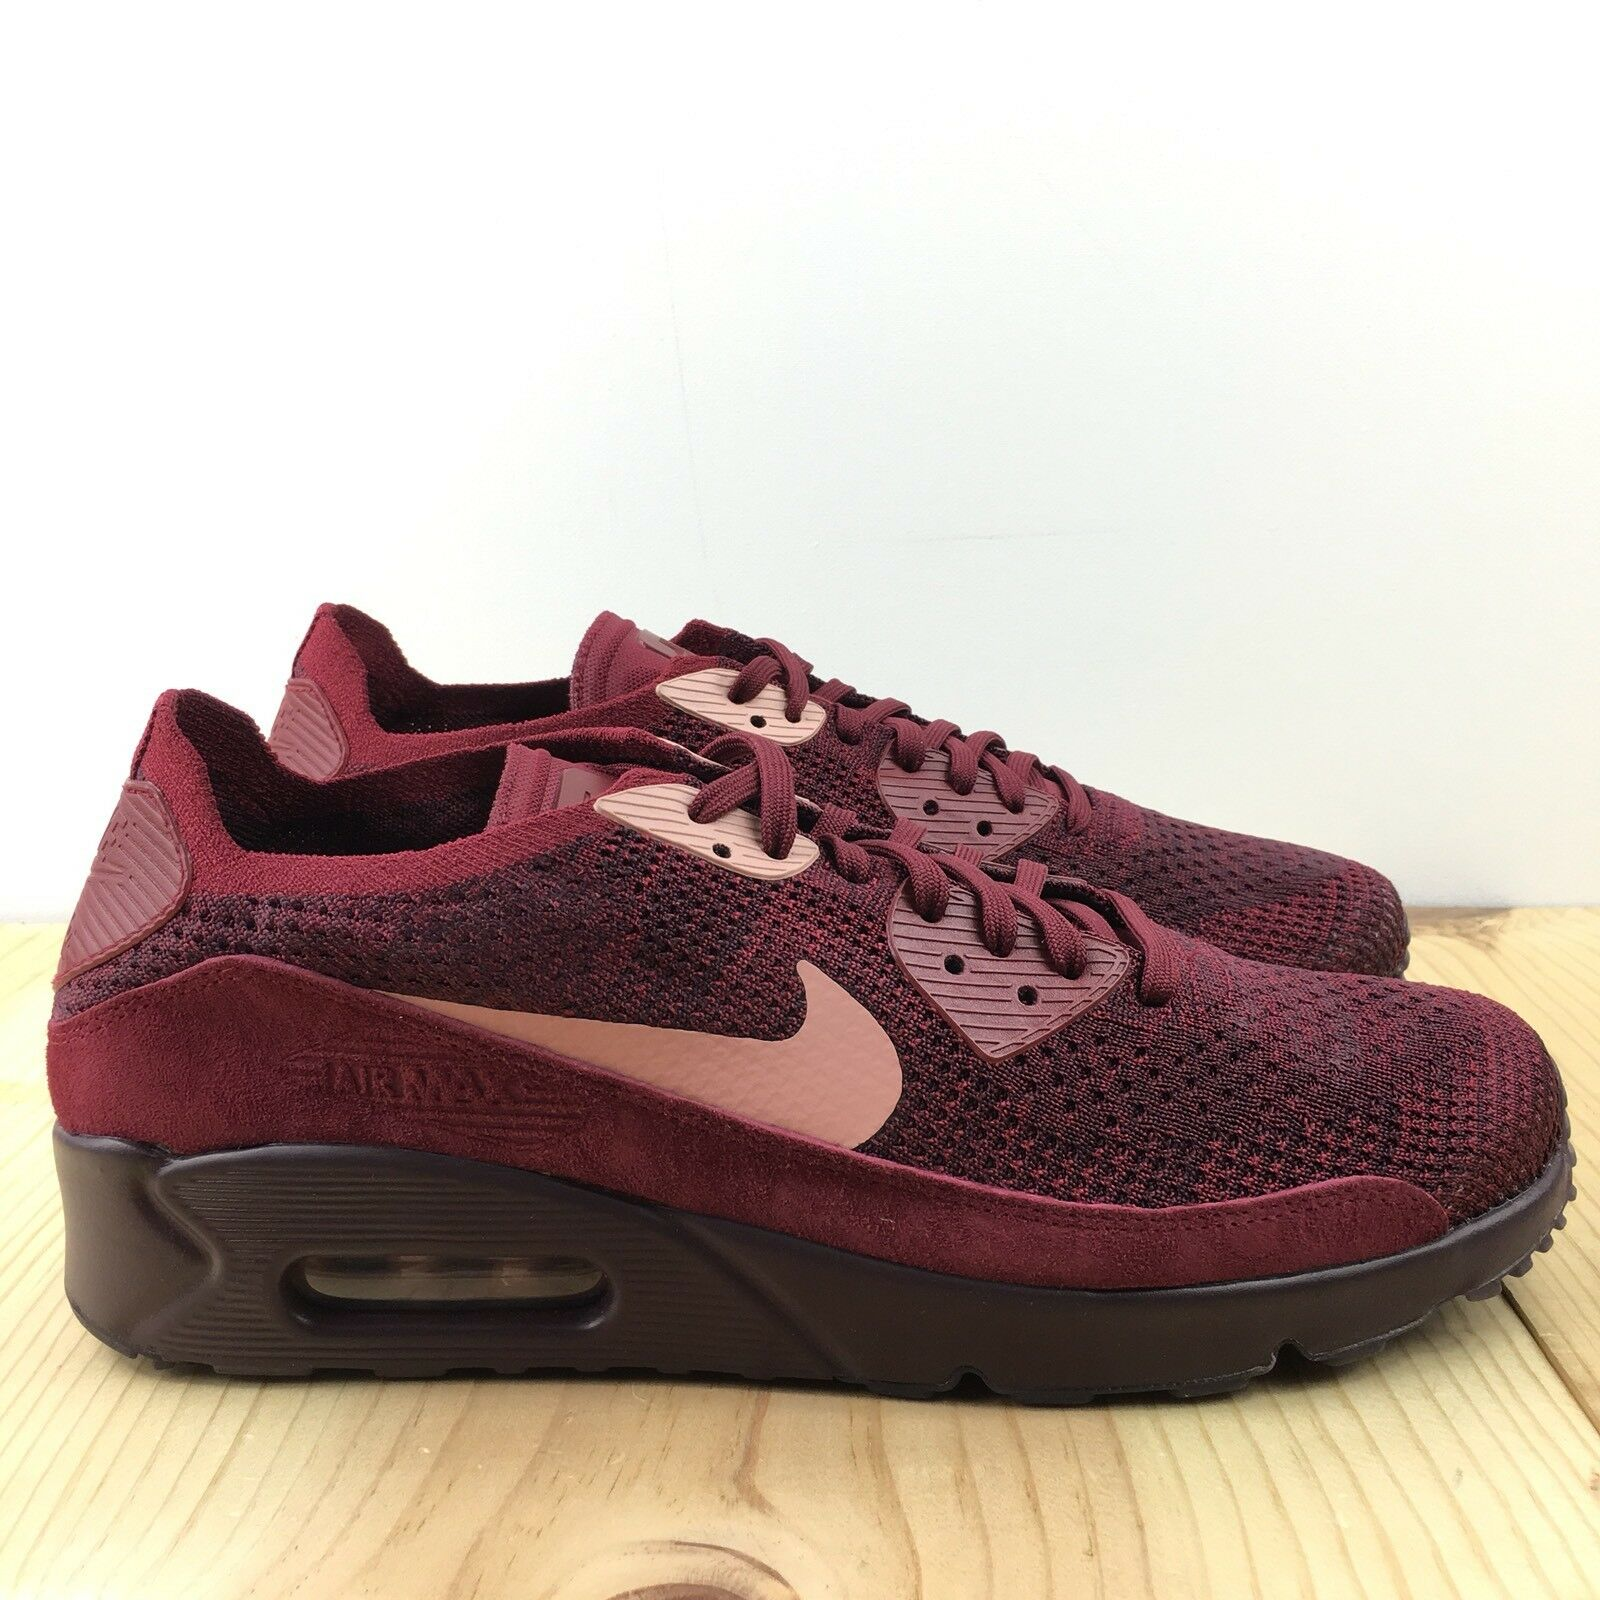 Nike Air Max 90 Ultra 2.0 Flyknit Size 9 Uomo Shoes Team Red Rust Pink